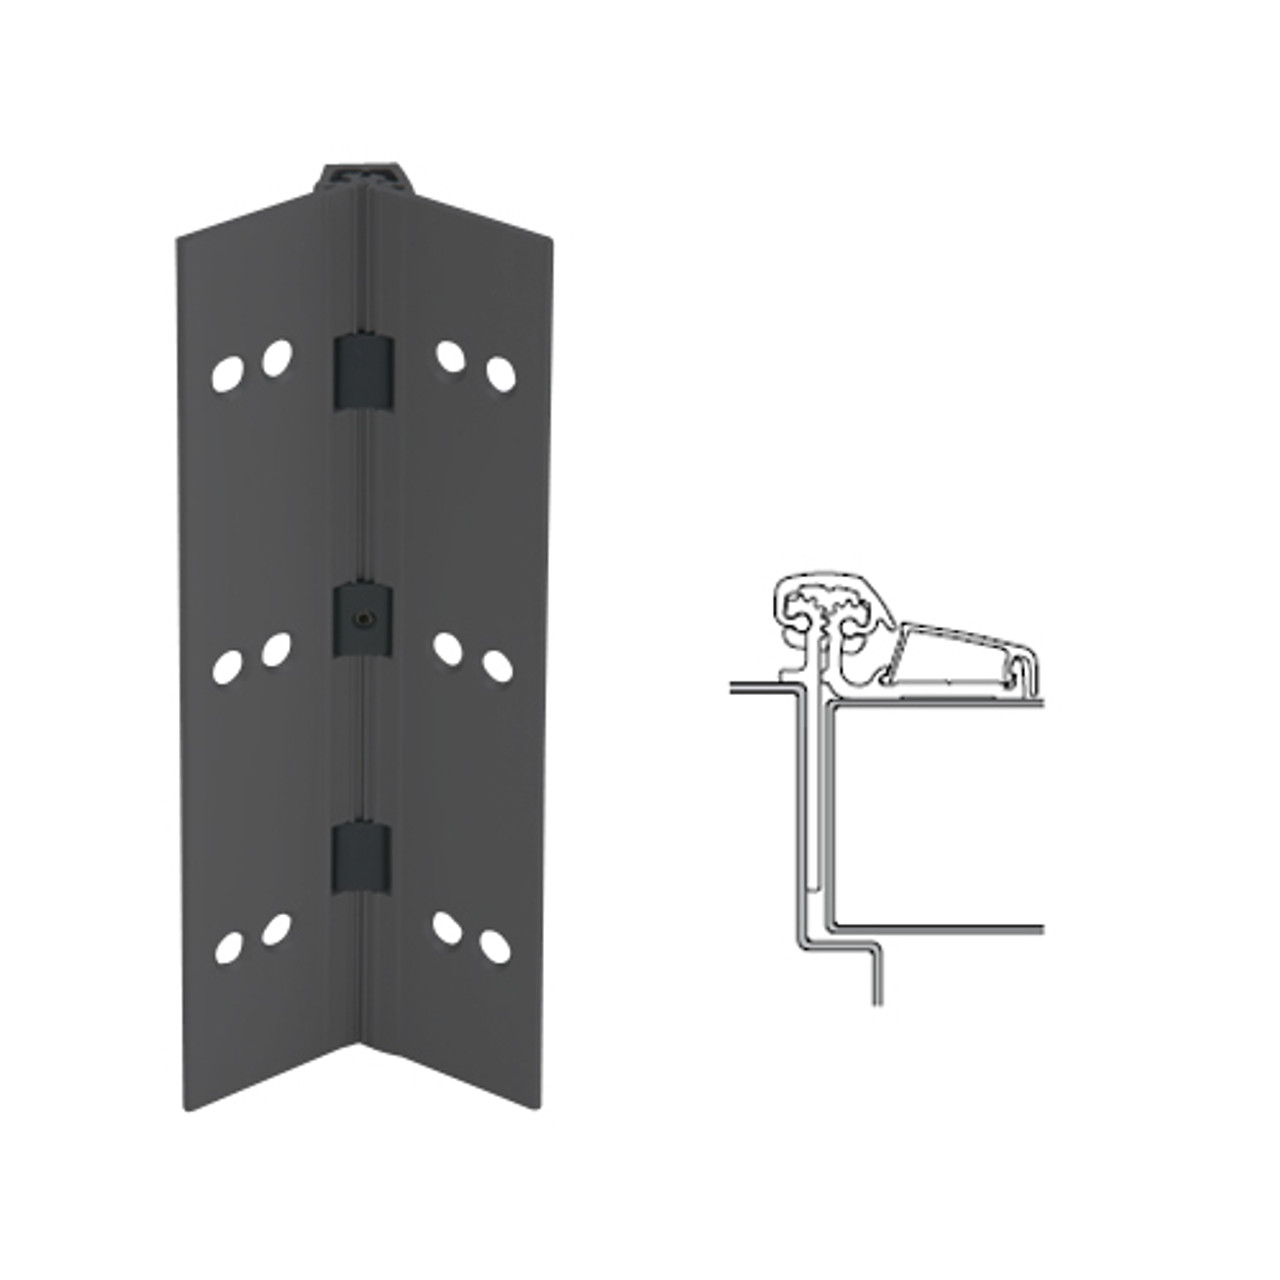 053XY-315AN-95-TEKWD IVES Adjustable Half Surface Continuous Geared Hinges with Wood Screws in Anodized Black